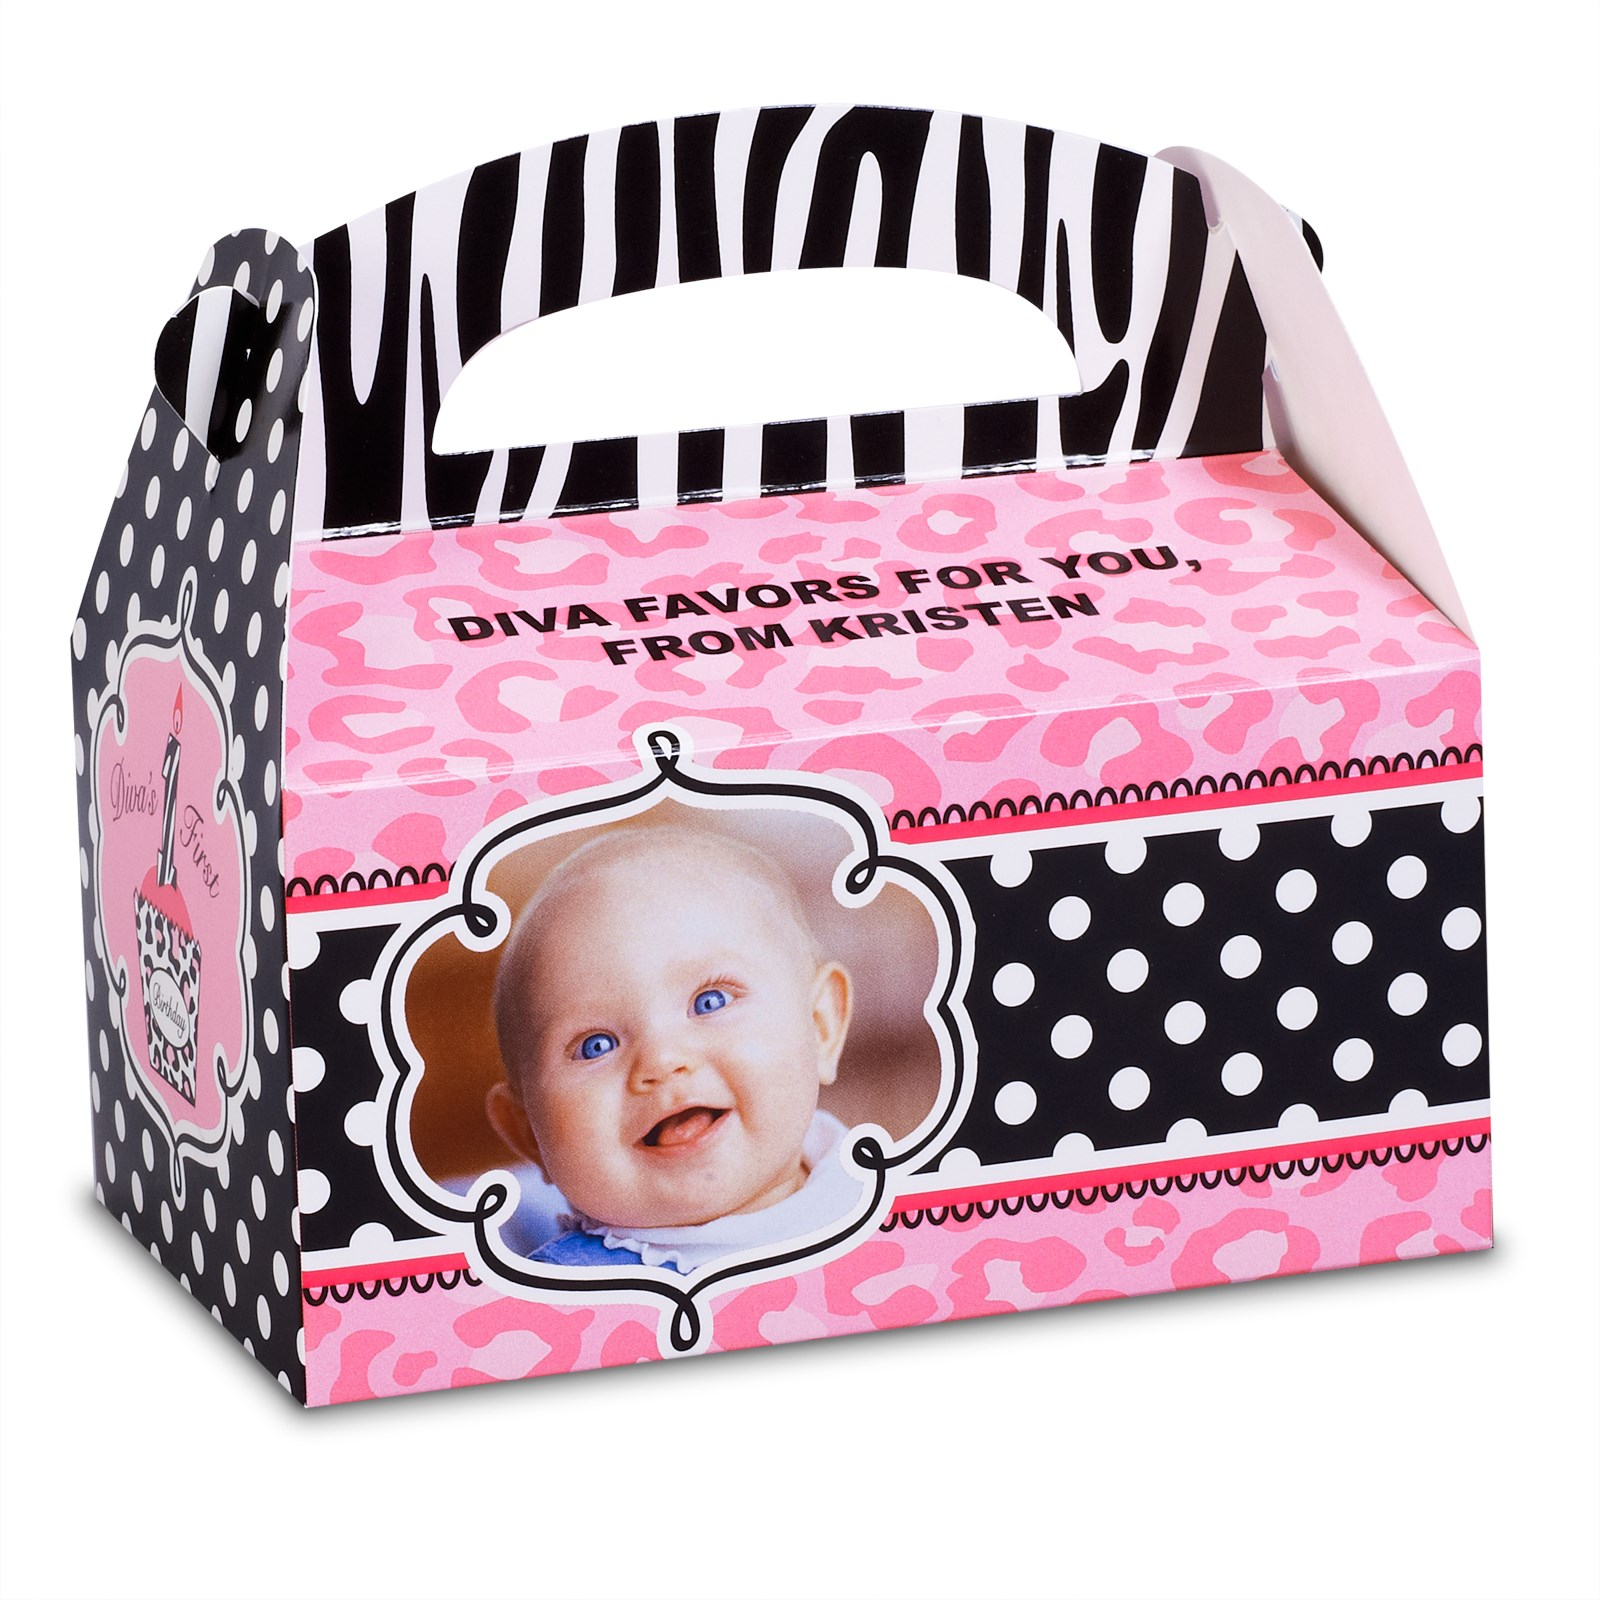 Personalized 1st Birthday Favor Boxes : Diva zebra print st birthday personalized empty favor